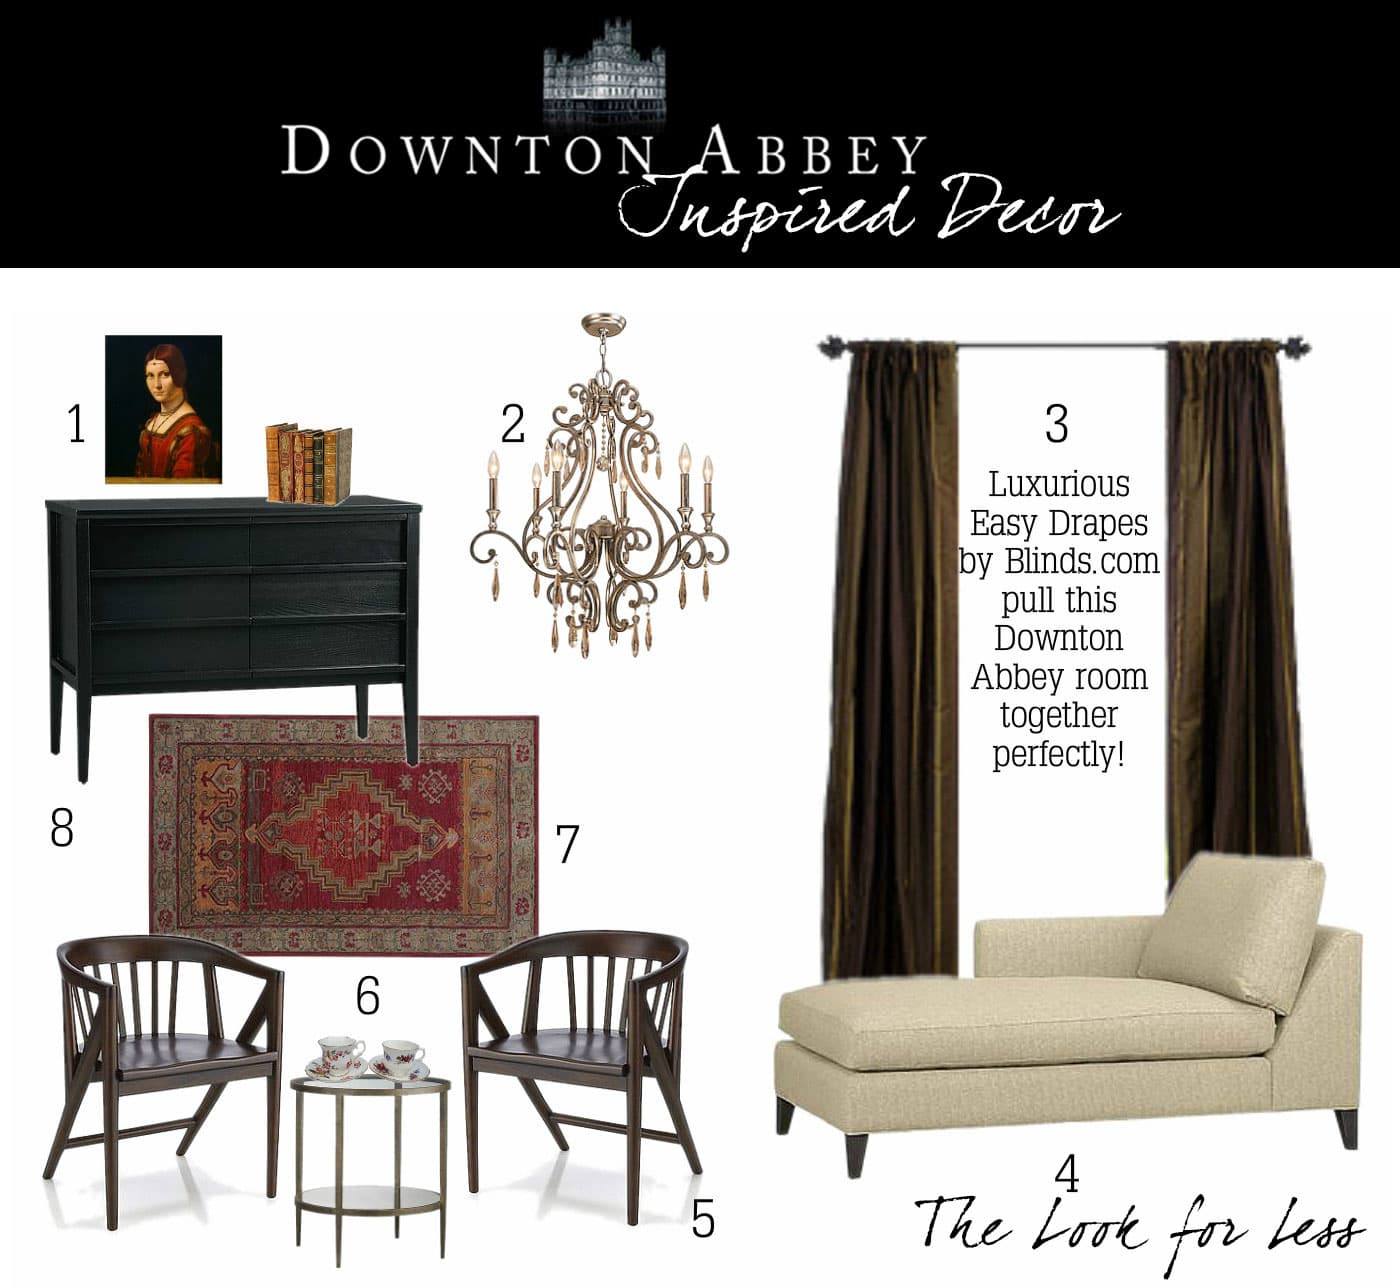 OB Downton Abbey On a Budget2 In the Lap of Luxury   Downton Abbey Inspired Decor